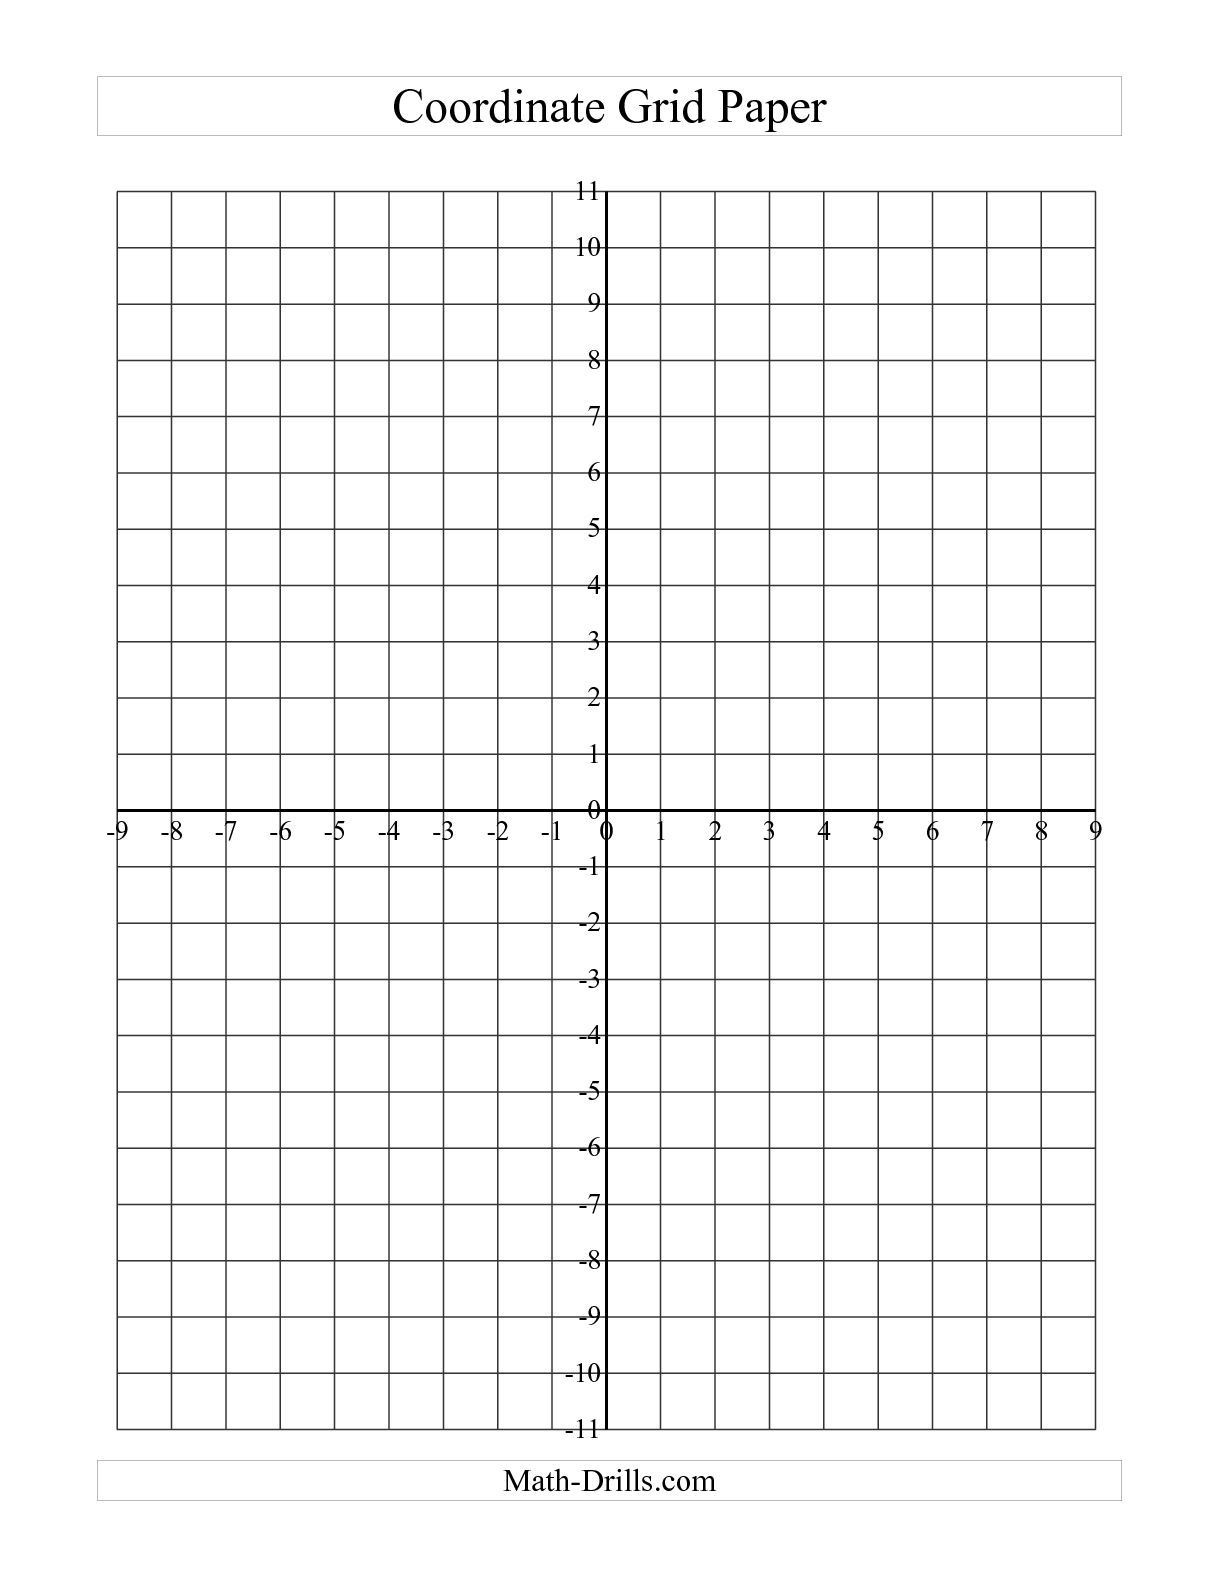 Coordinate Grid Pictures 5th Grade Coordinate Grid Worksheets for Kids